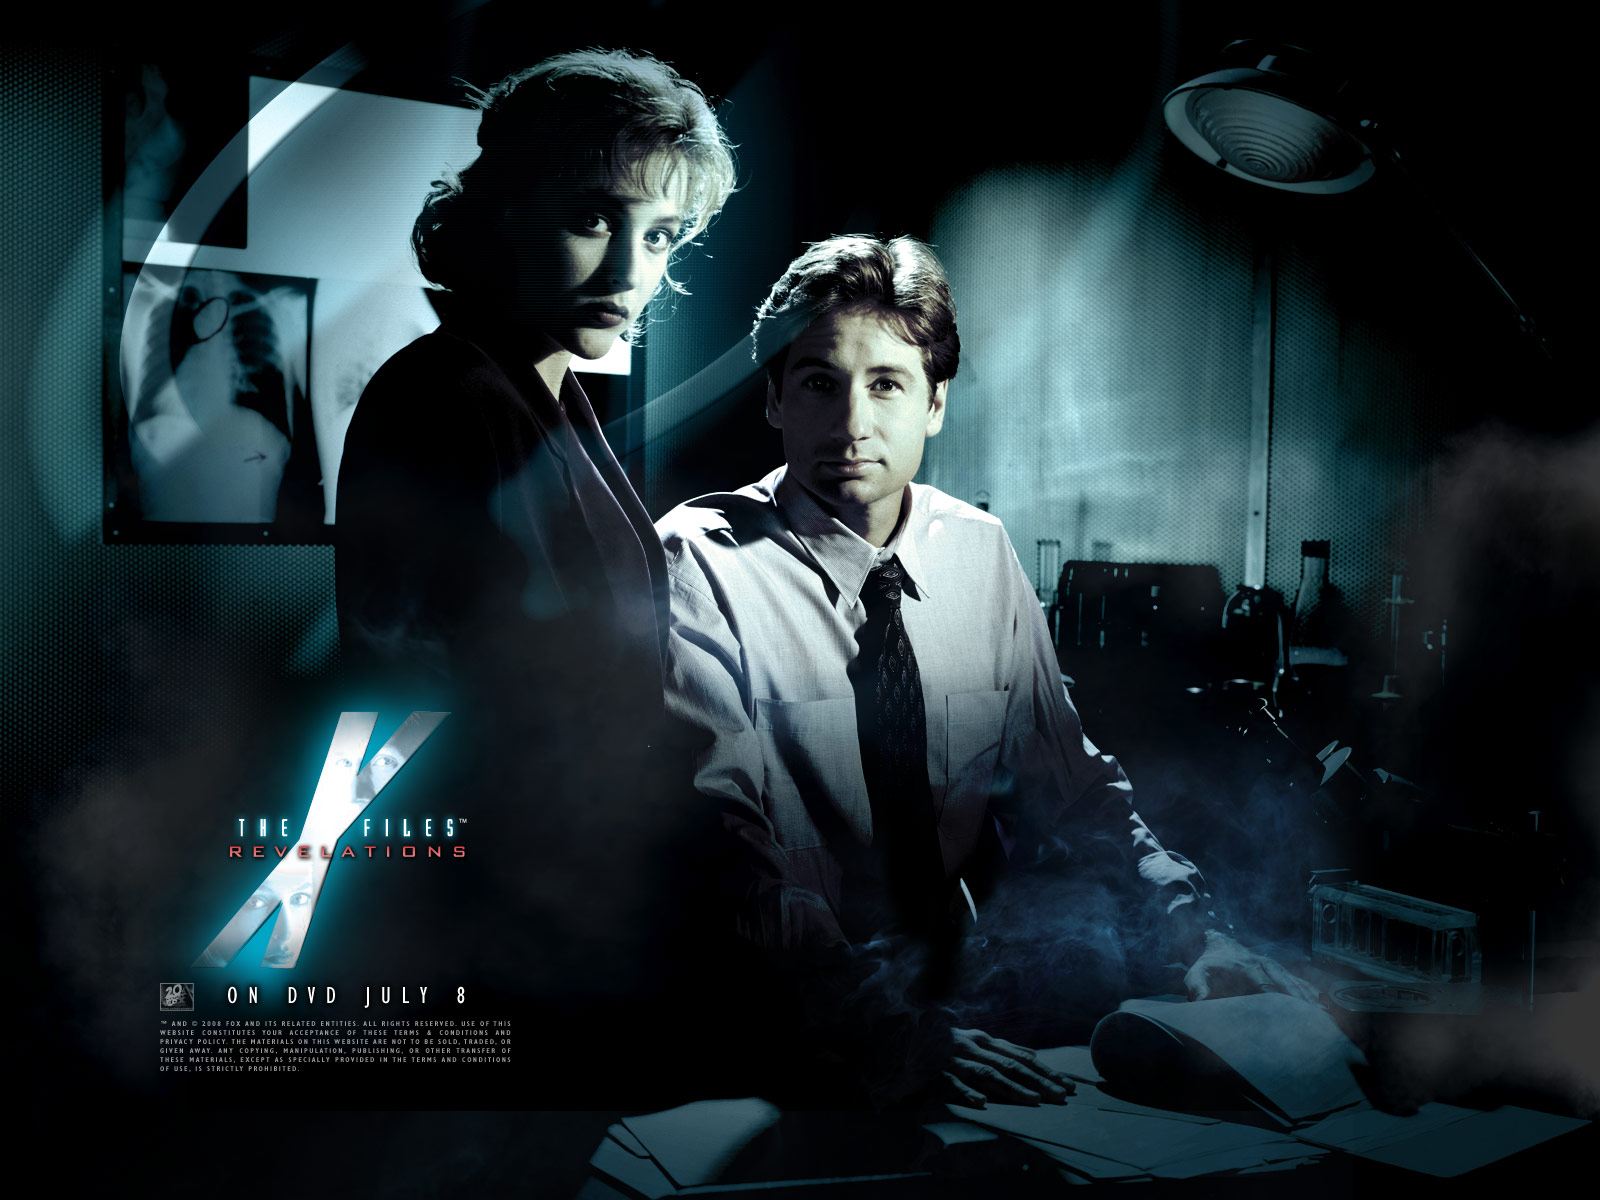 The X Files Images I Want To Believe HD Wallpaper And Background